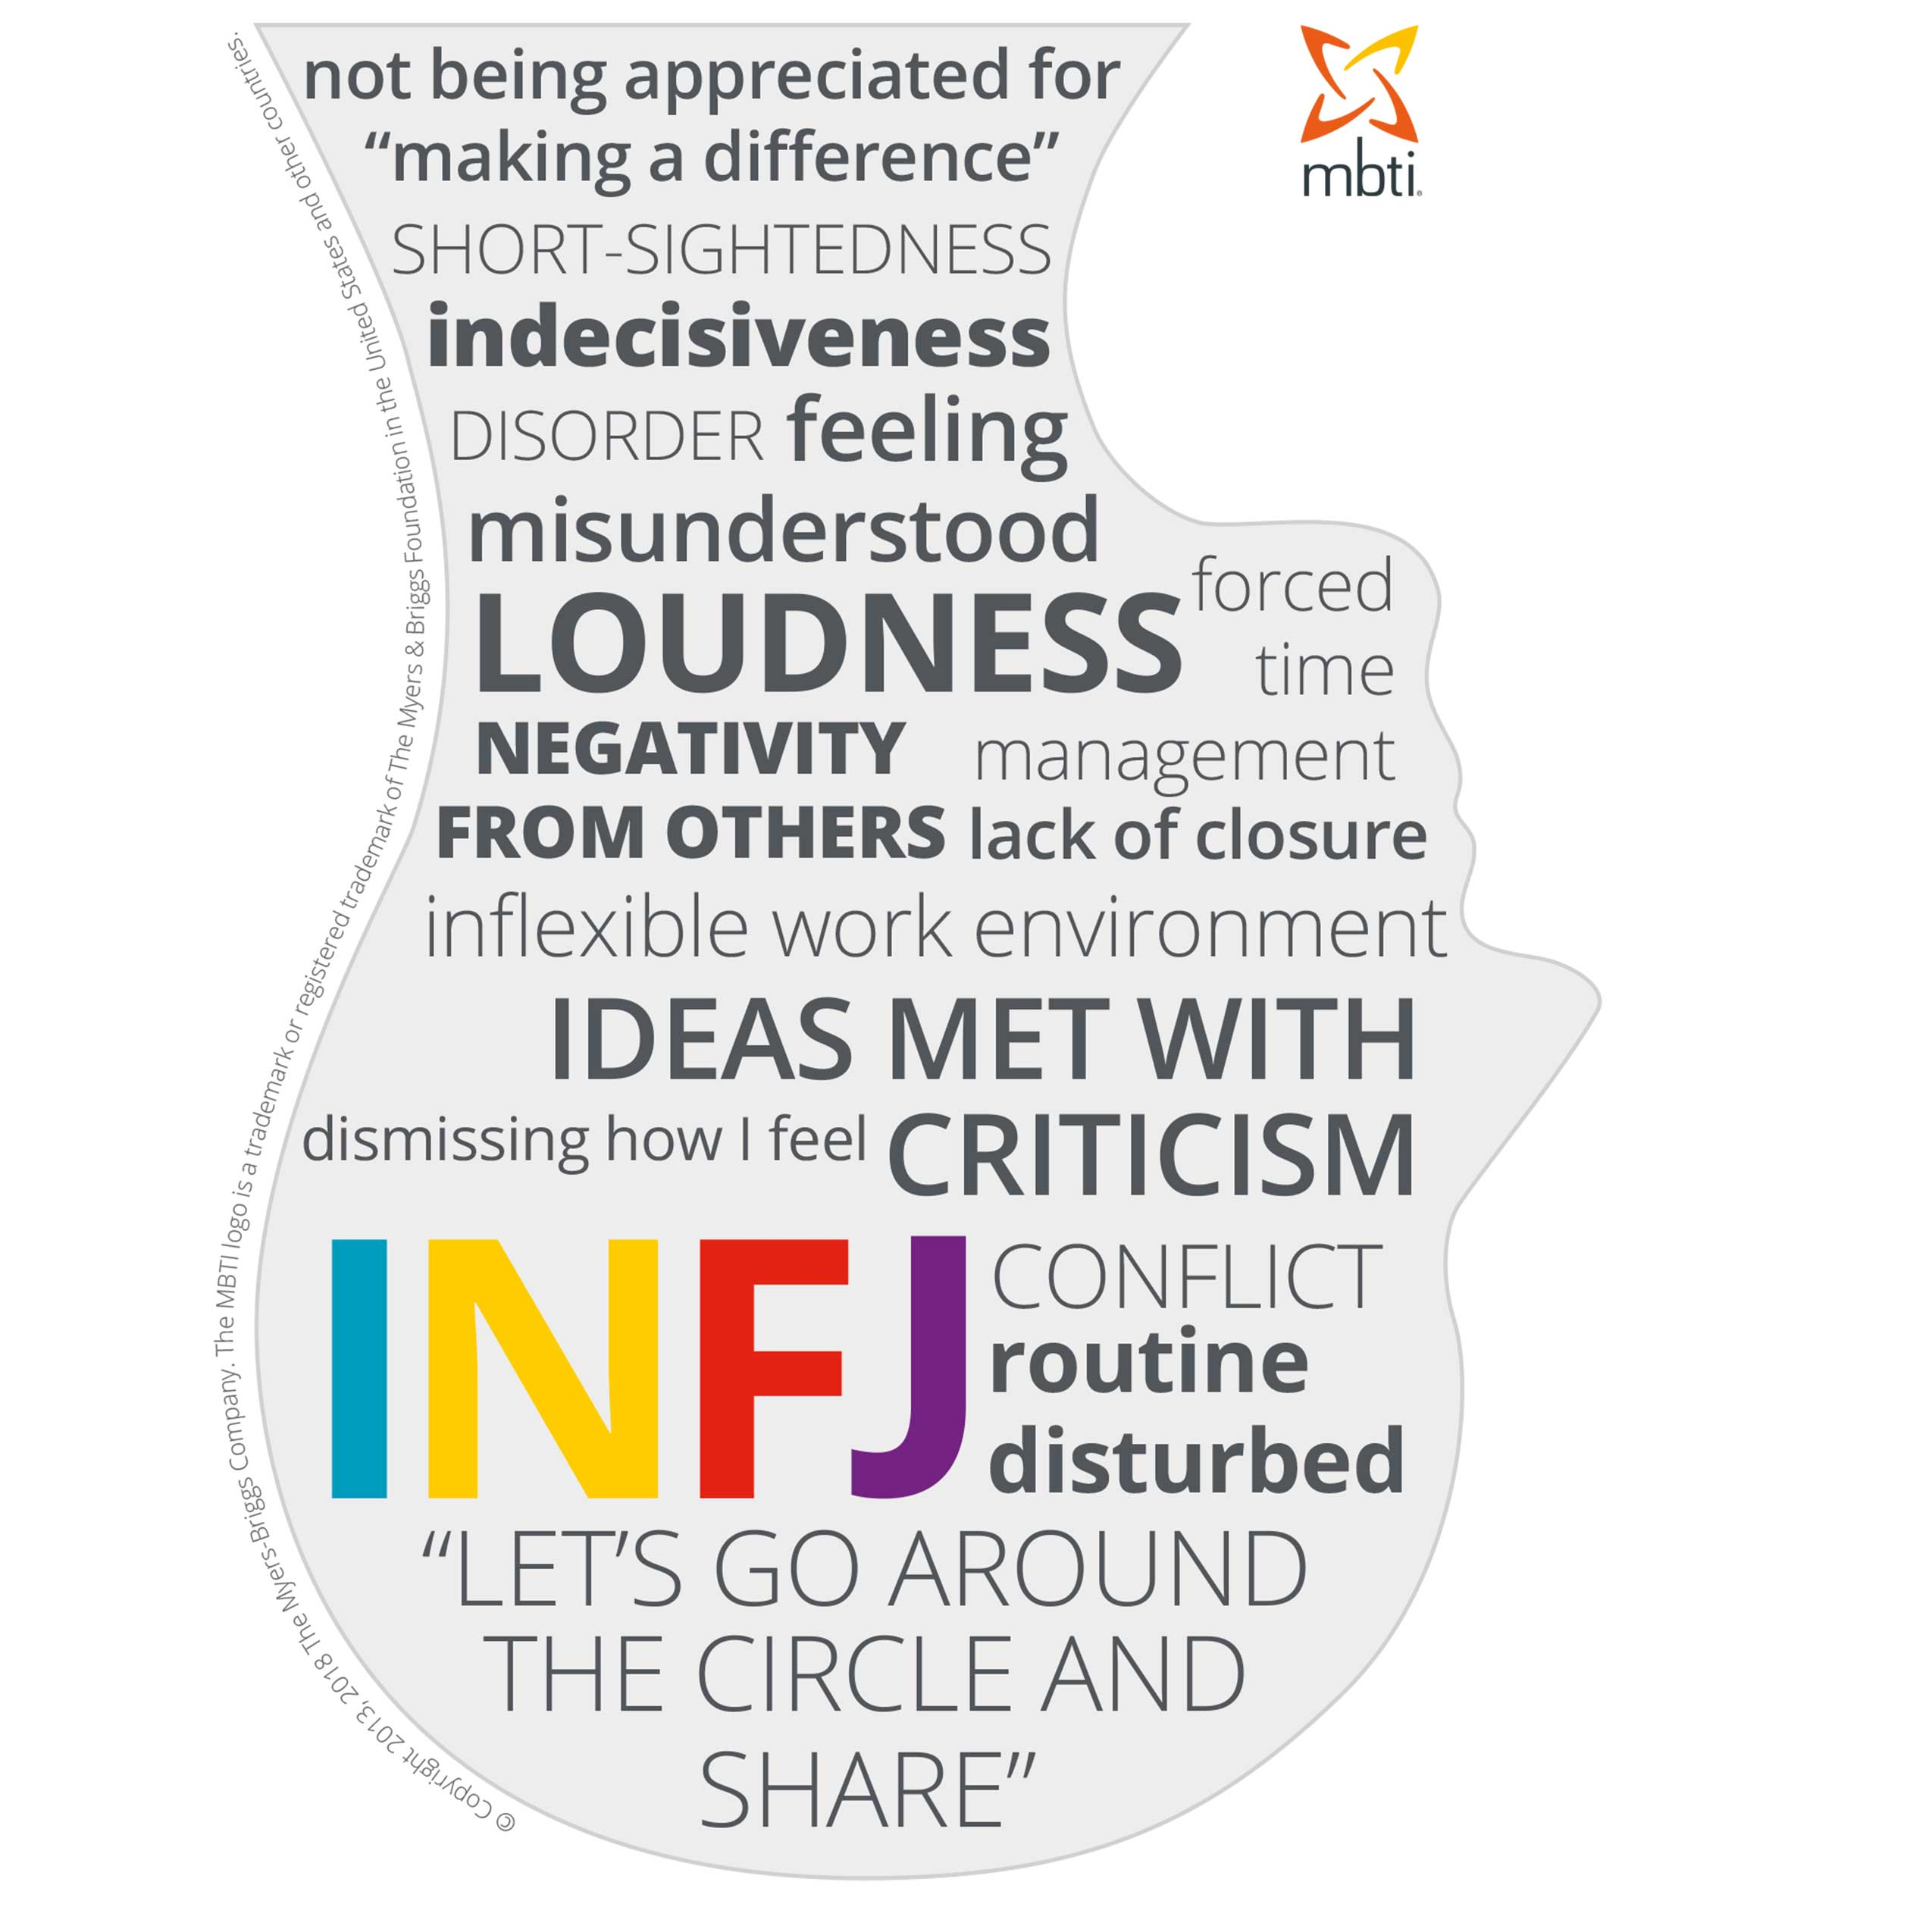 INFJ Personality Type – Myers Briggs (MBTI) Psychometric